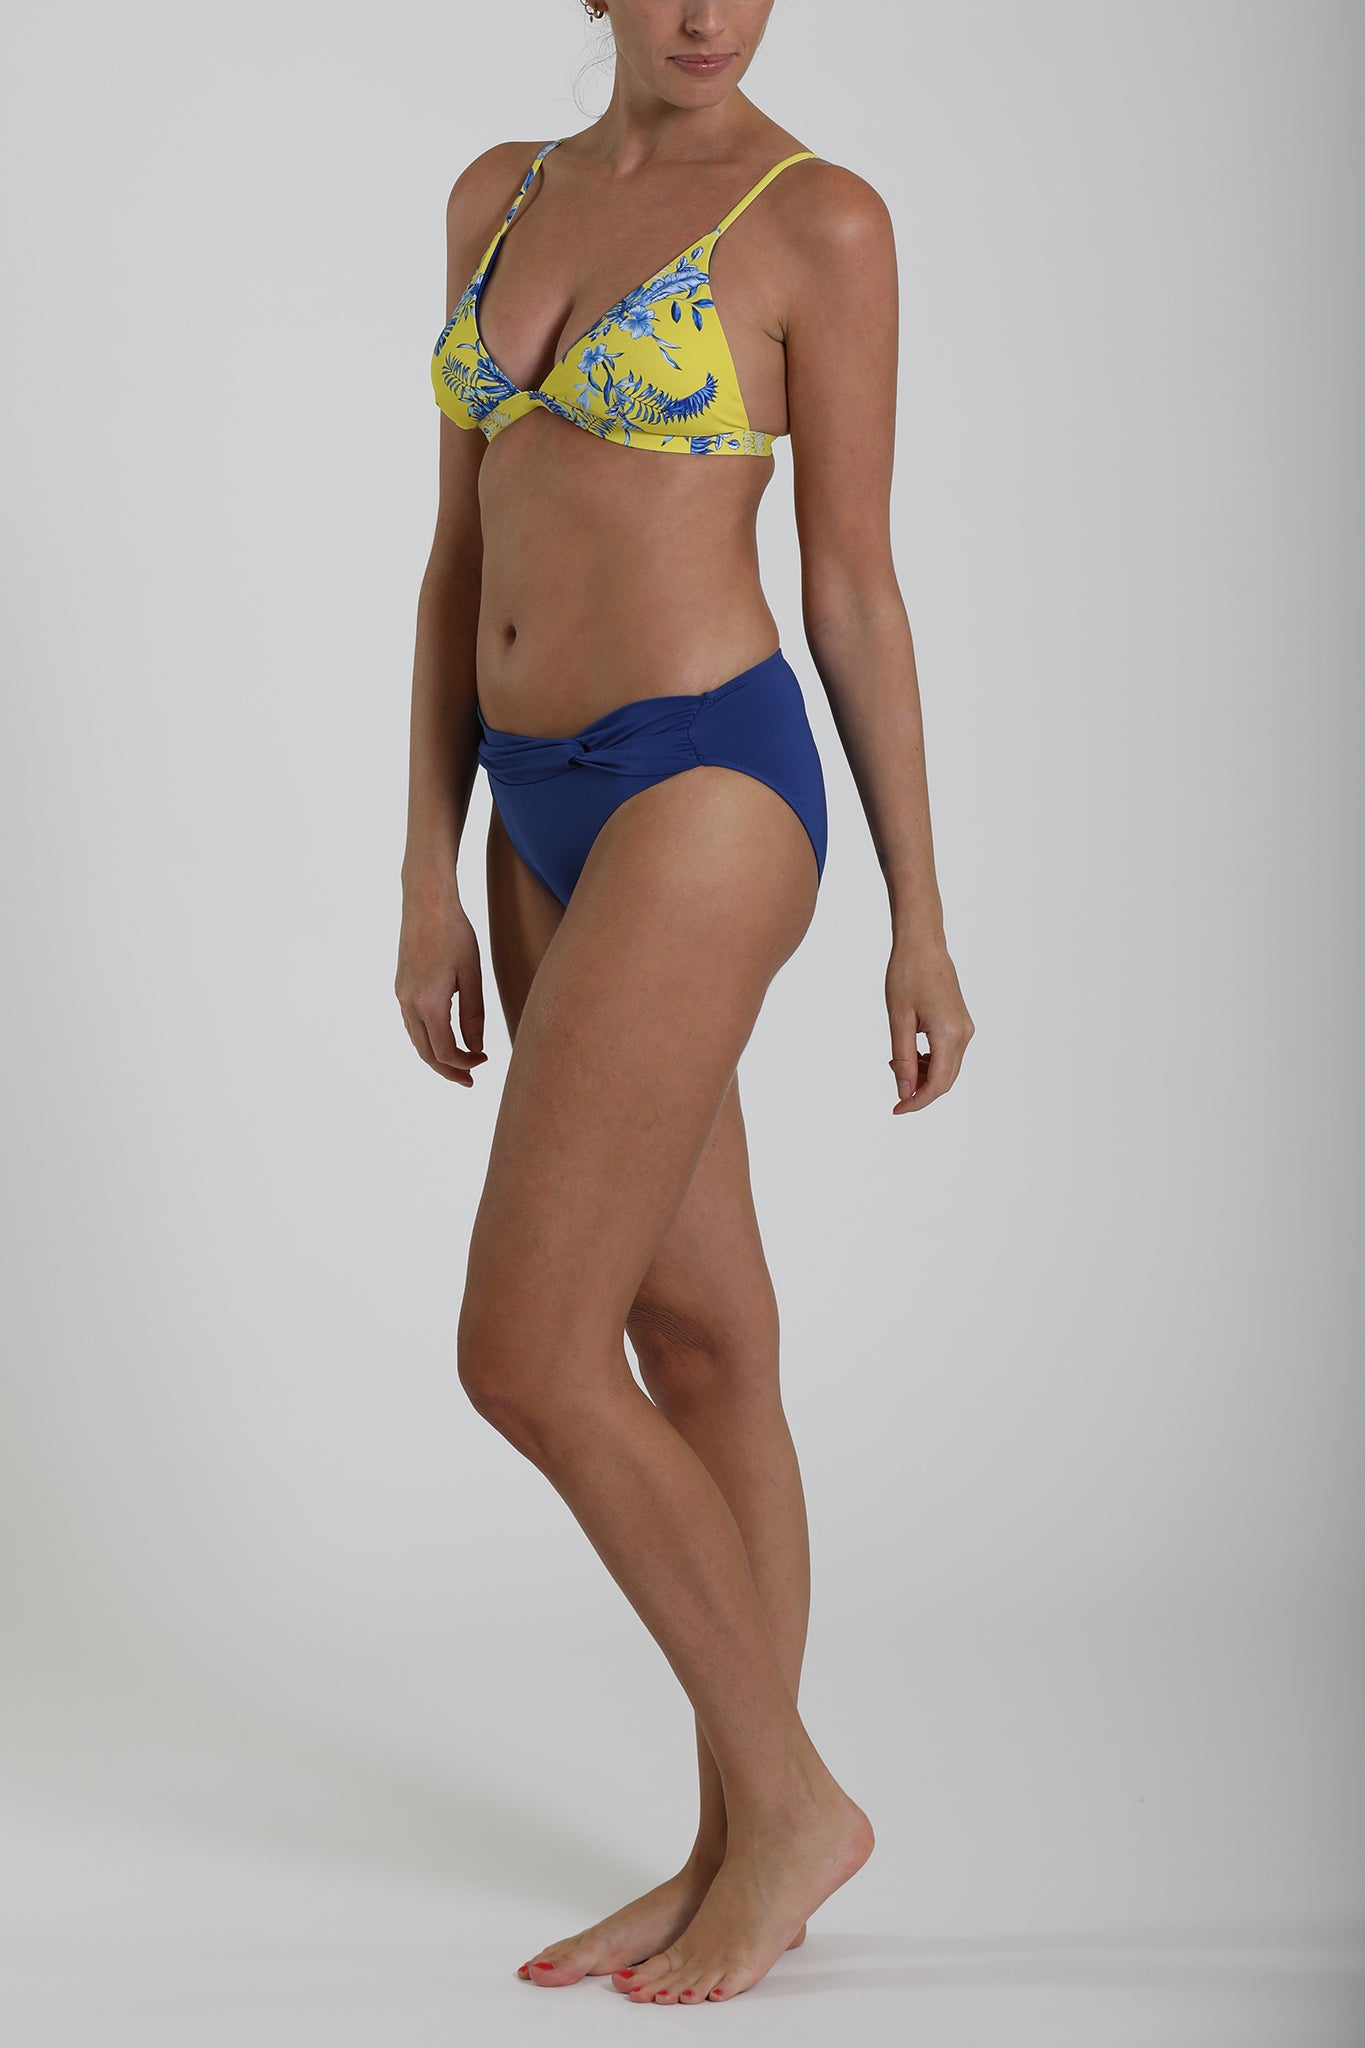 096ffe3ee9 TENERIFE - swimwear triangle bikini top - Porcelaine Tropic – Mint ...